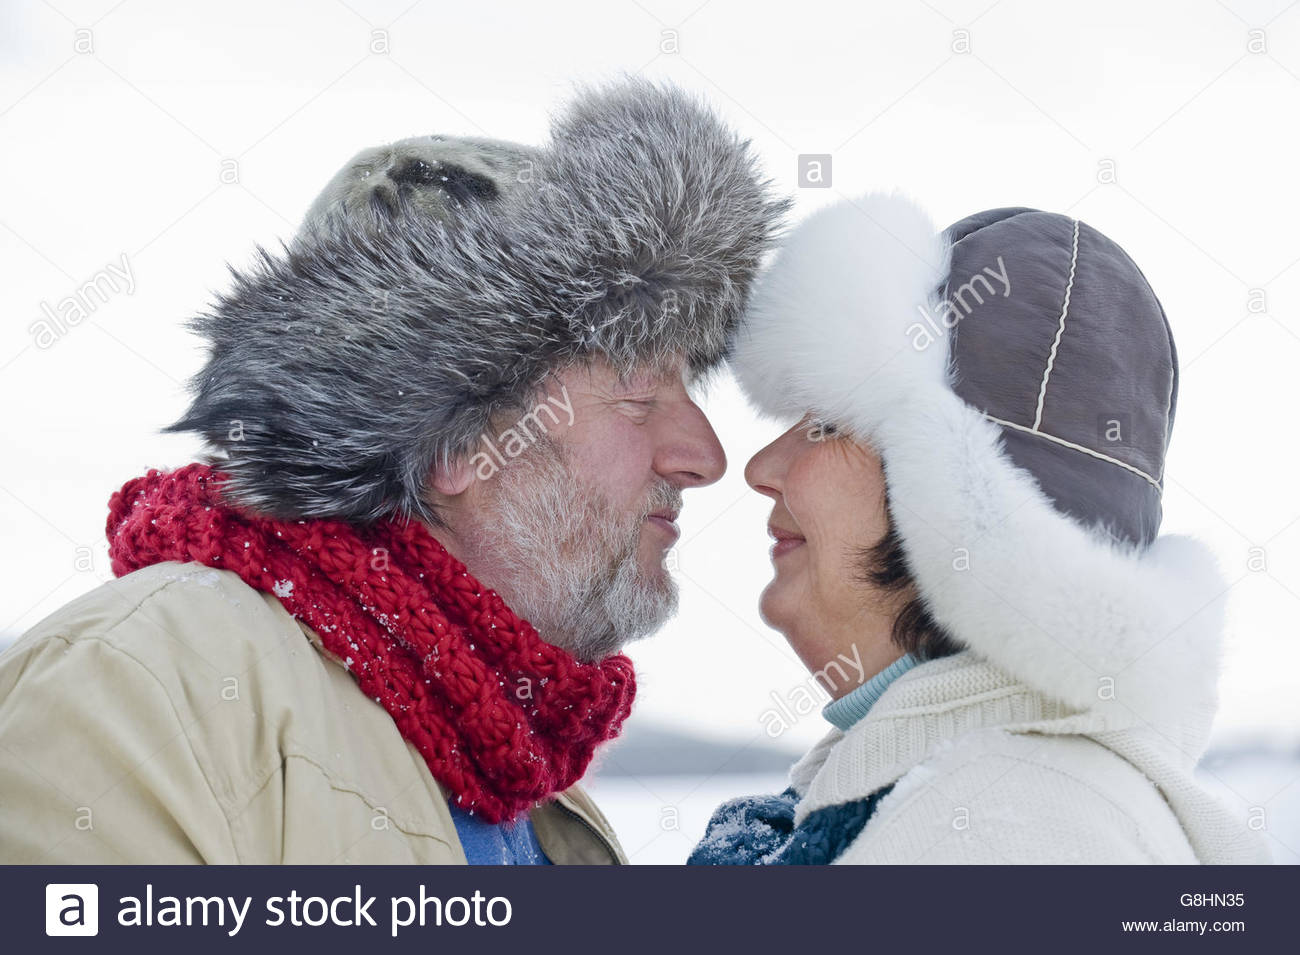 Senior couple in fur-trimmed hats touching noses - Stock Image